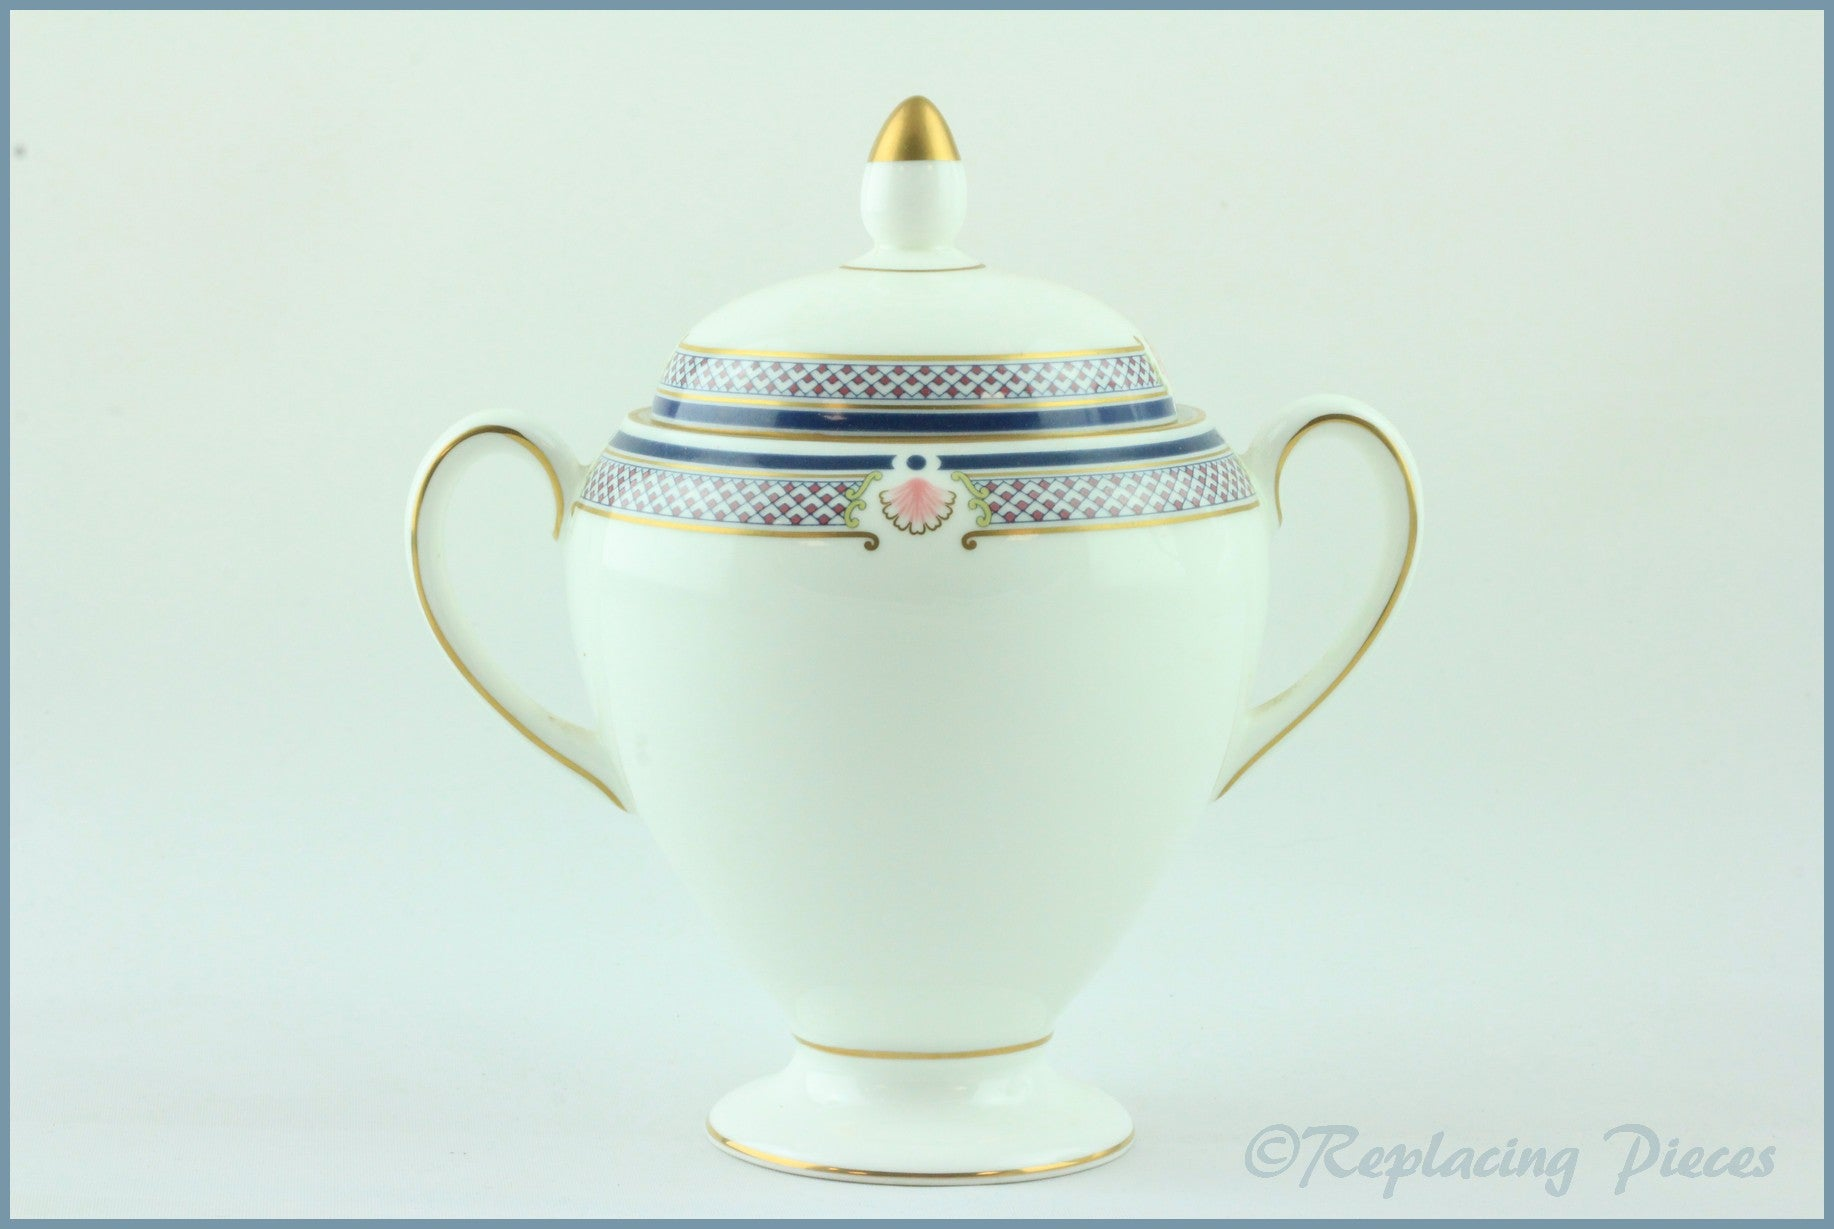 Wedgwood - Waverley - Lidded Sugar Bowl (Tall)